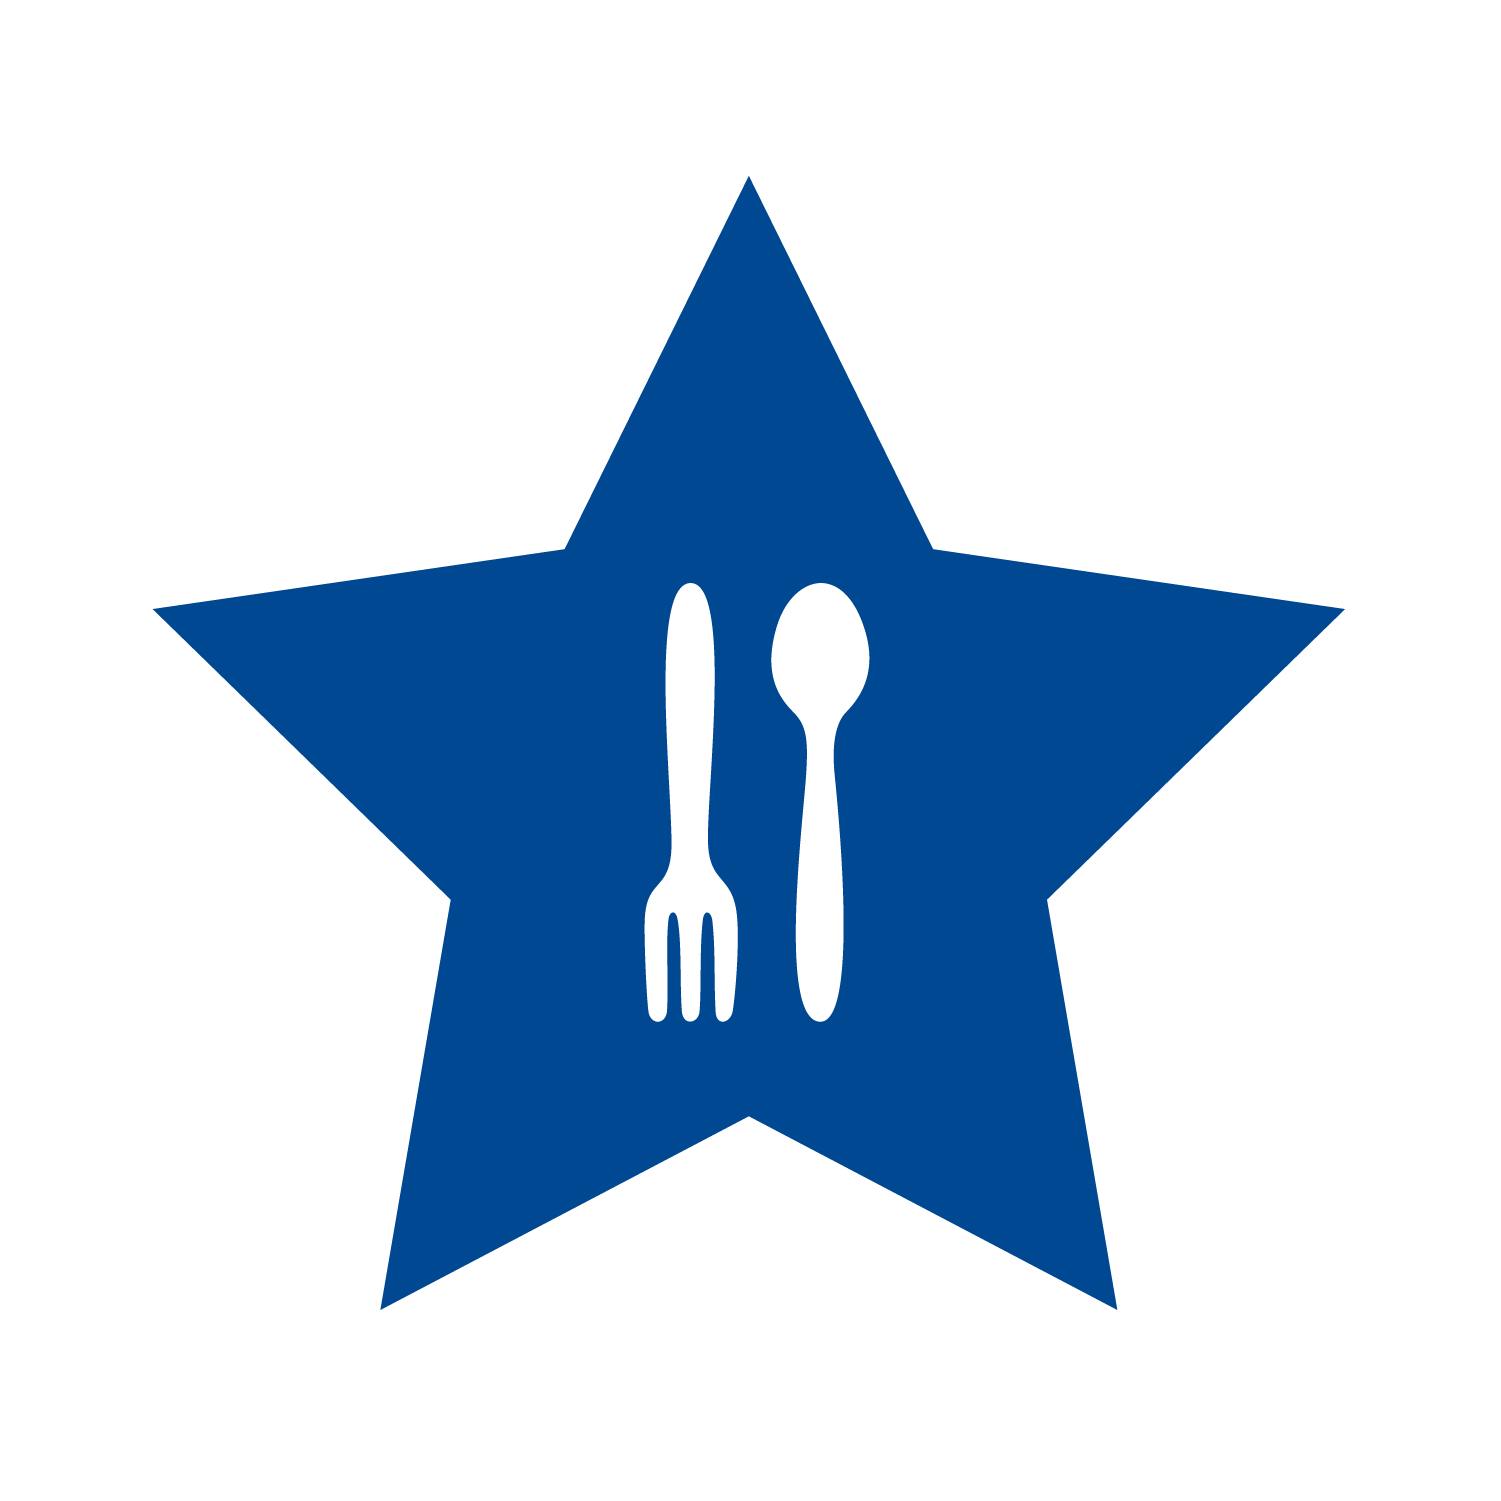 ACL_HOSP_Stars-Blue-FoodService.png